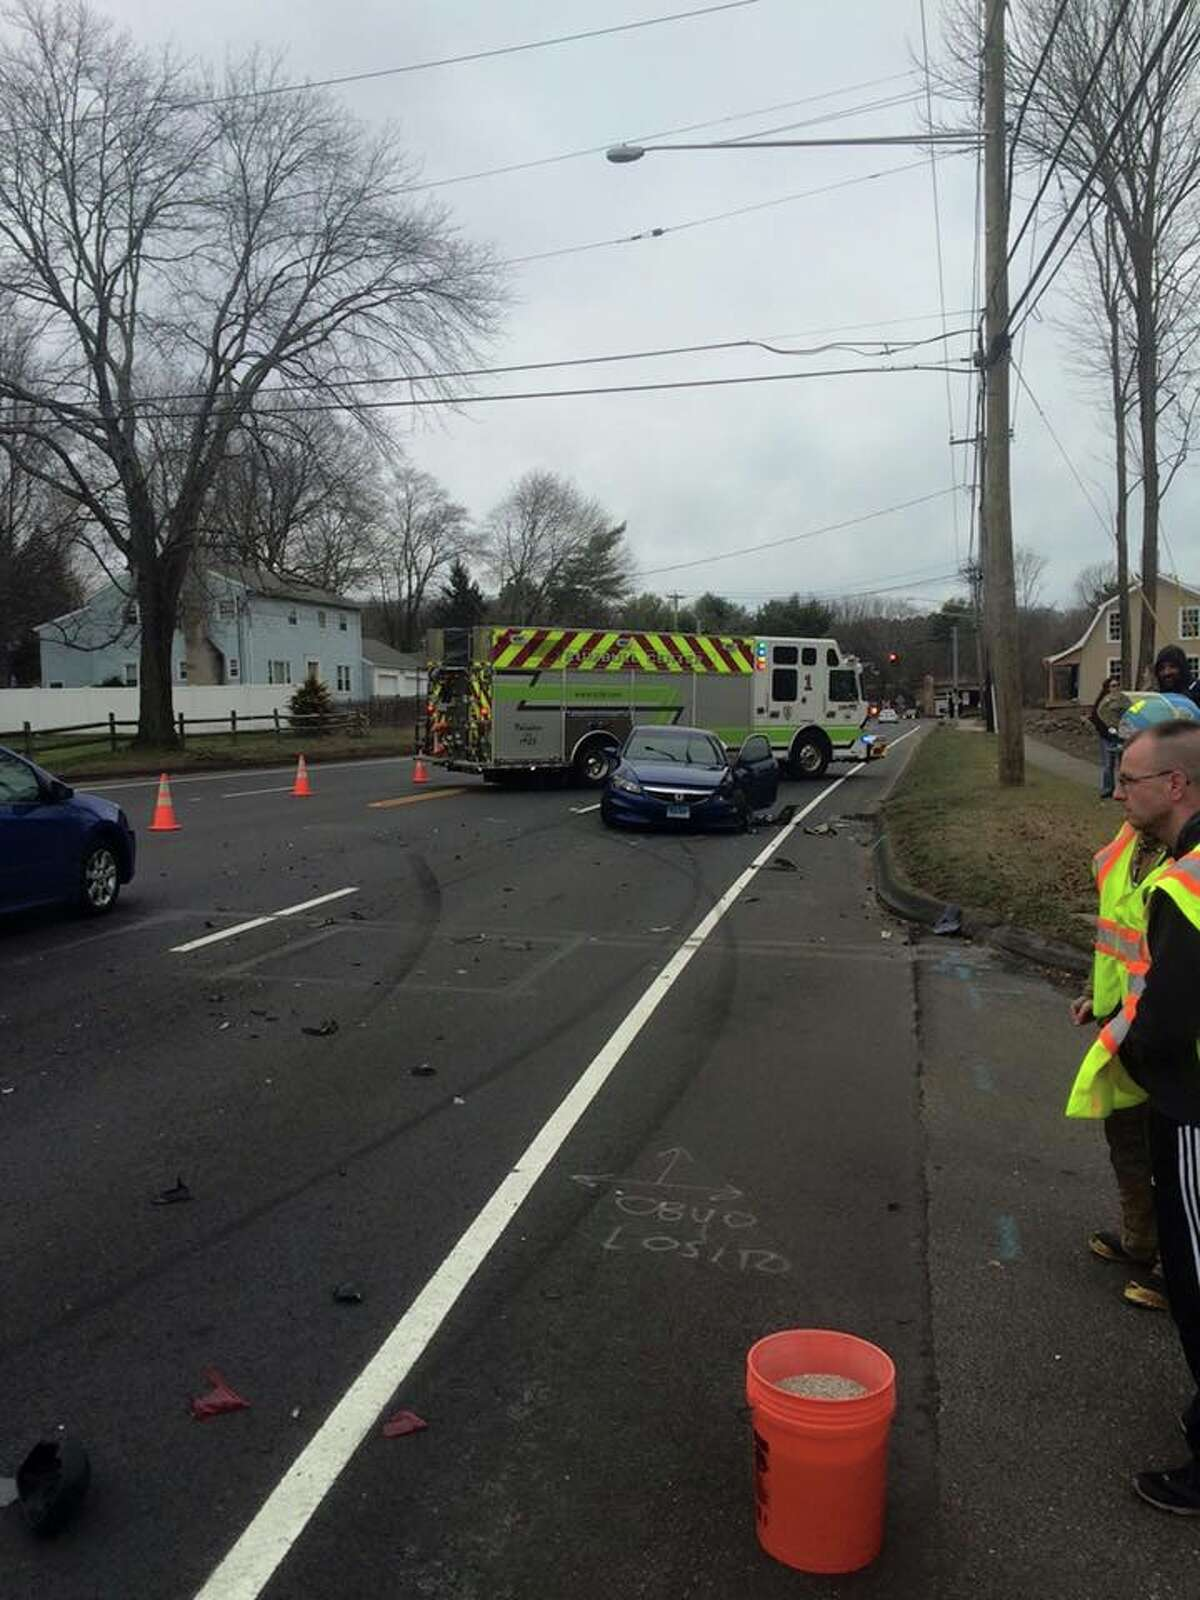 On Sunday, Trumbull Police and Fire crews responded to a 3-car accident on White Plains Road.